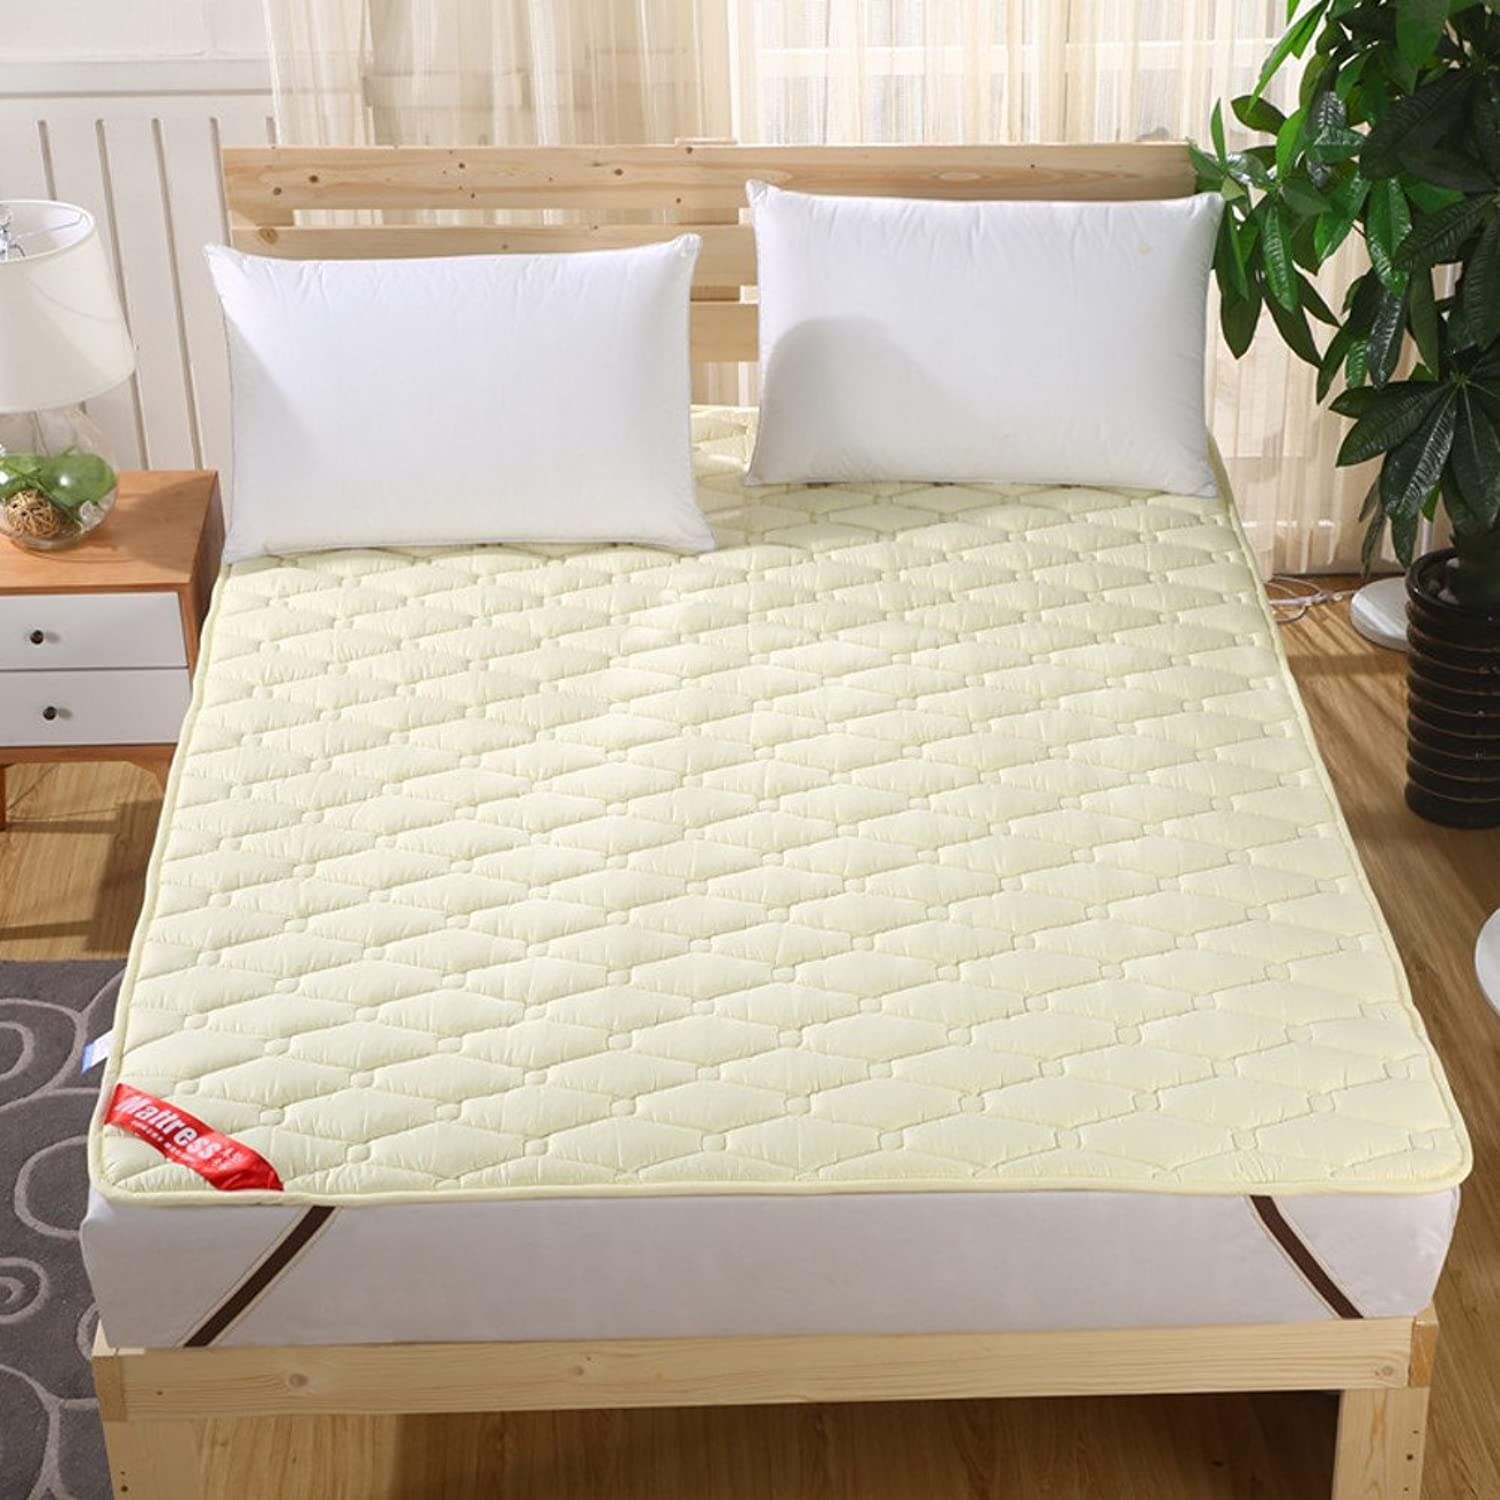 Bedroom Mattress Tatami mat Bed pad fold-Able Anti-Skidding 1.5Cm Thick [Individual] [Double] for livingroom Student Dormitory Tents-B 90x200cm(35x79inch)